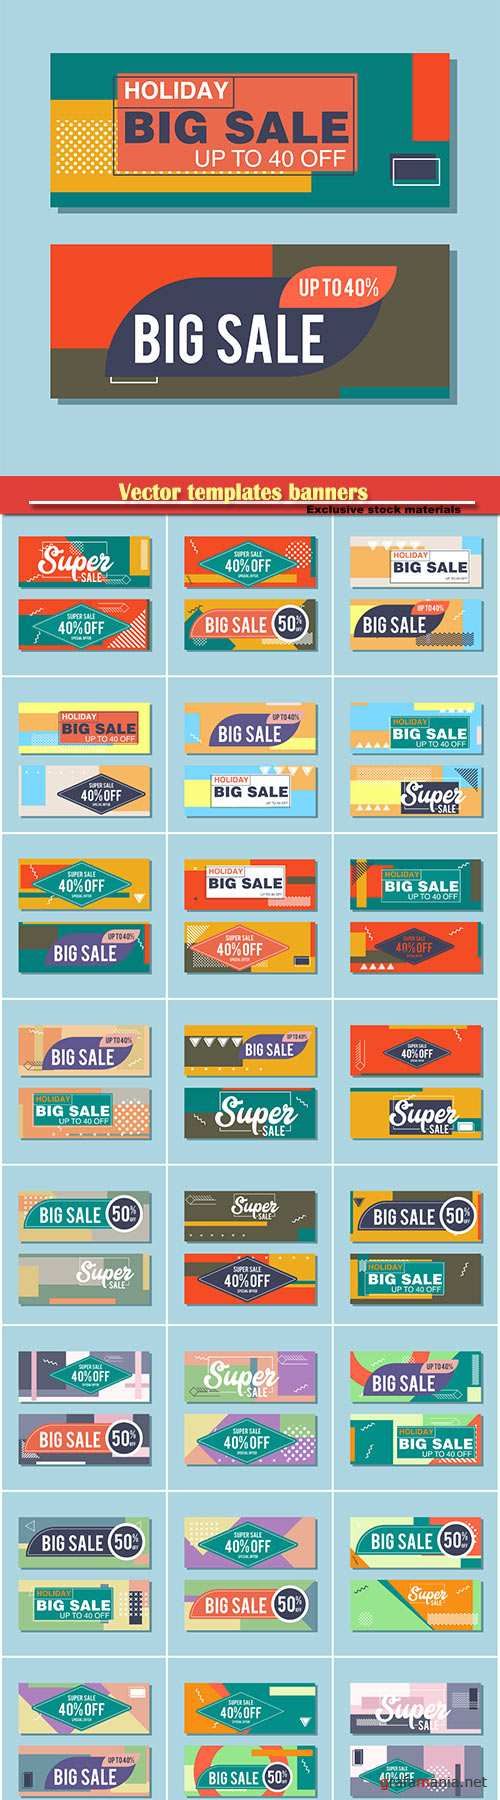 Vector templates banners, coupon codes and vouchers